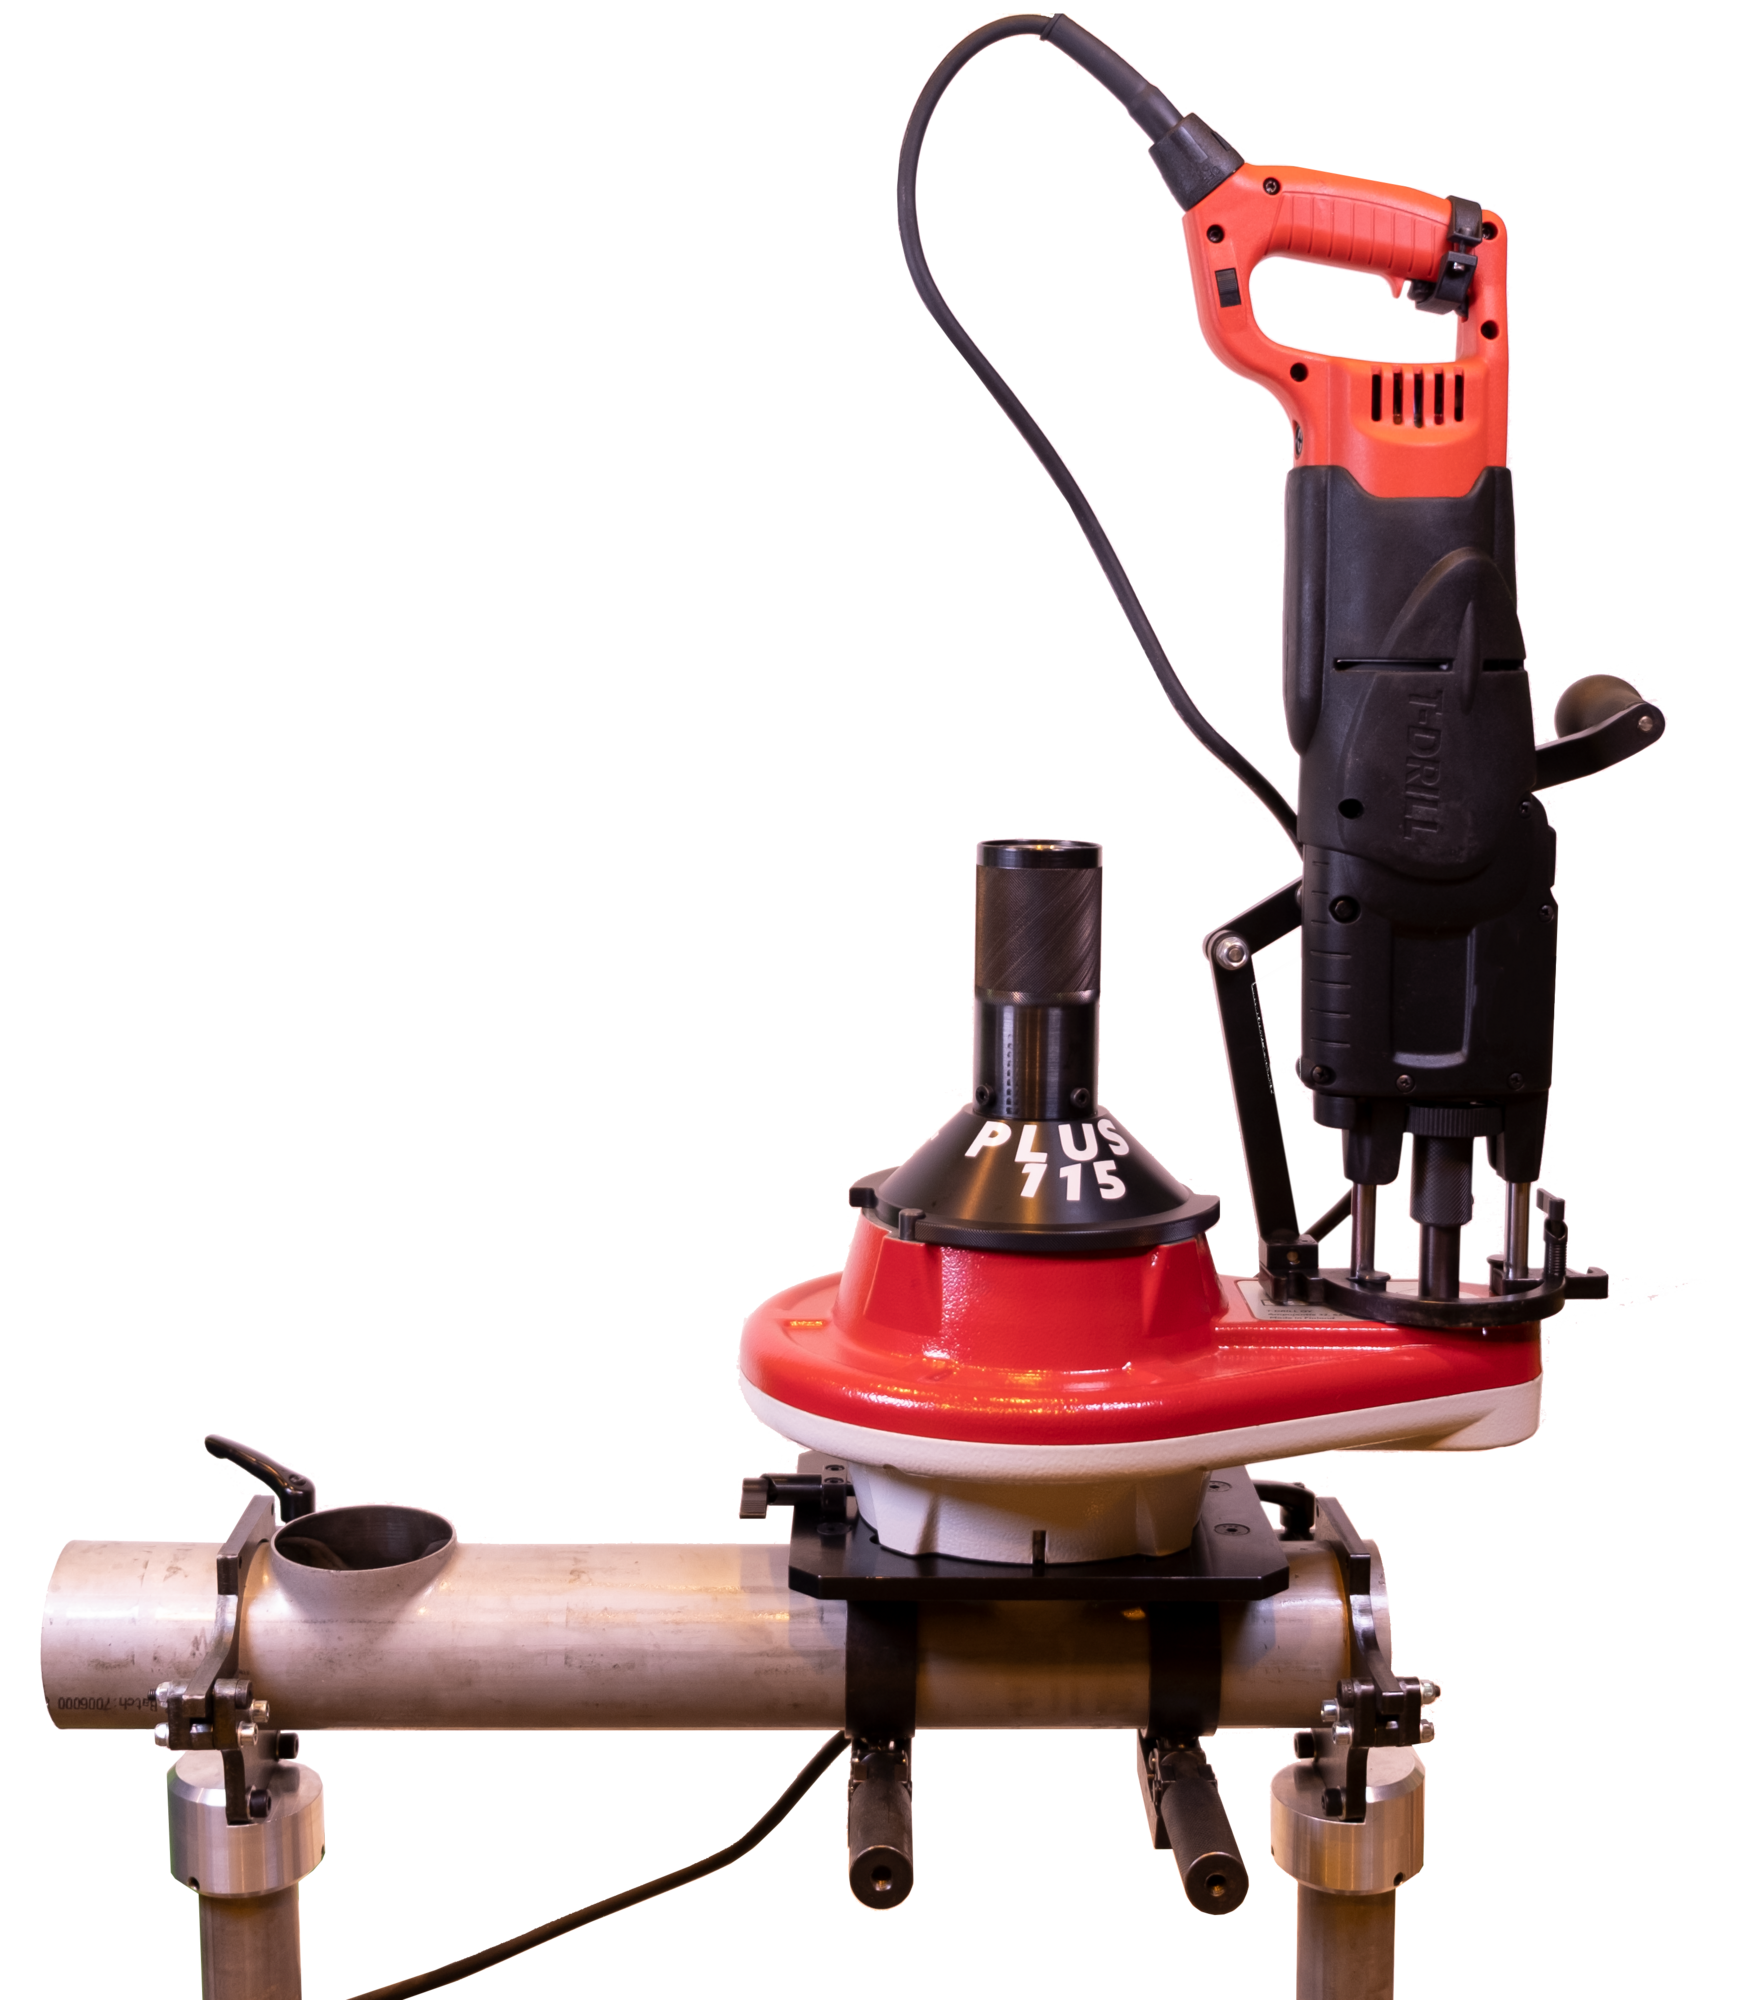 T-DRILL PLUS 115 SS Portable Collaring System for Stainless Steel Tube Branching